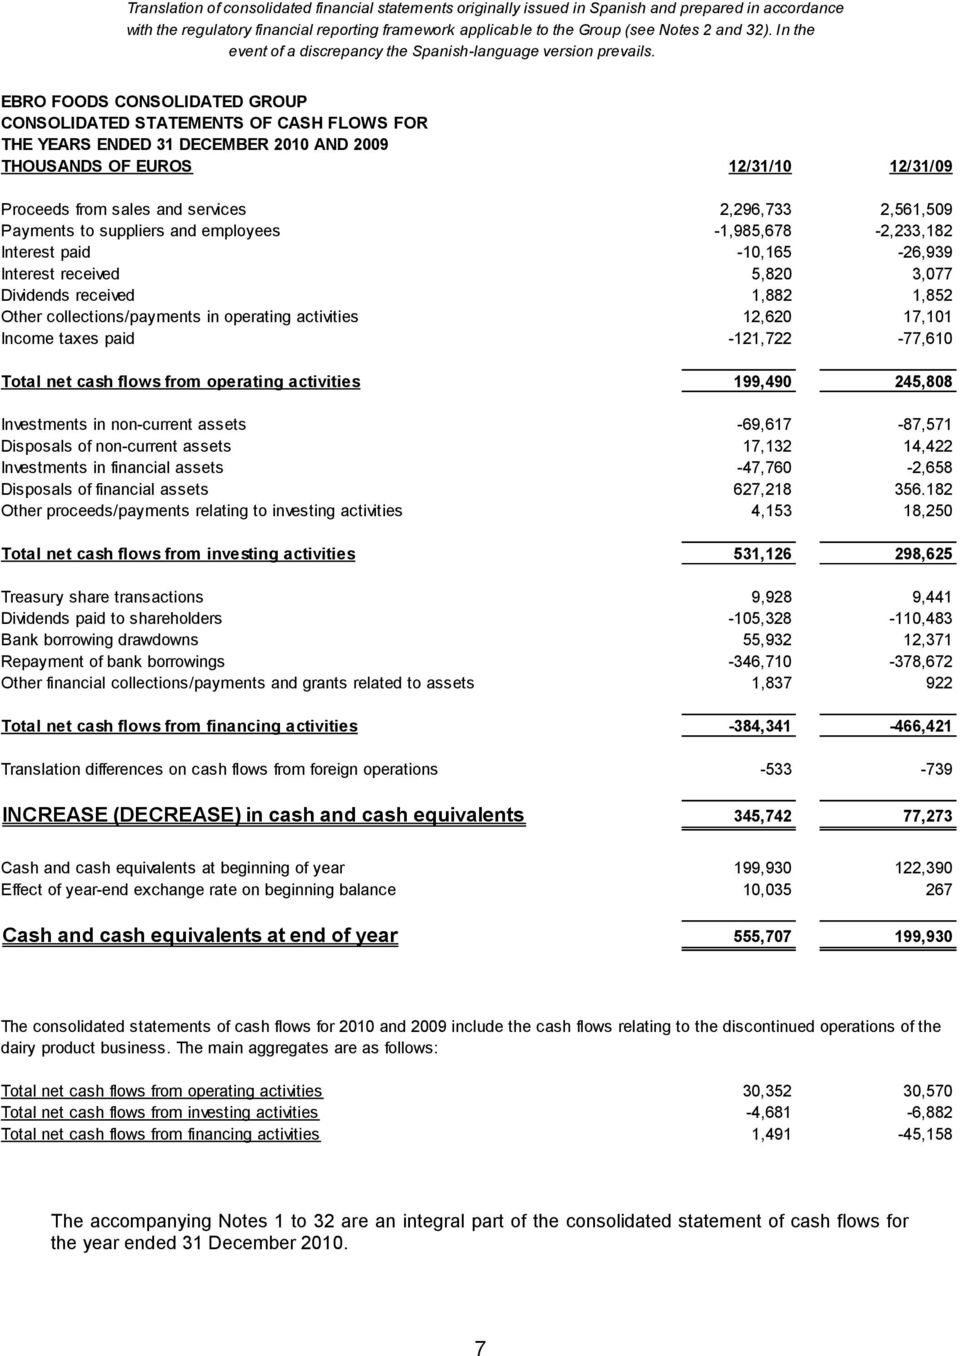 EBRO FOODS CONSOLIDATED GROUP CONSOLIDATED STATEMENTS OF CASH FLOWS FOR THE YEARS ENDED 31 DECEMBER 2010 AND 2009 THOUSANDS OF EUROS 12/31/10 12/31/09 Proceeds from sales and services 2,296,733